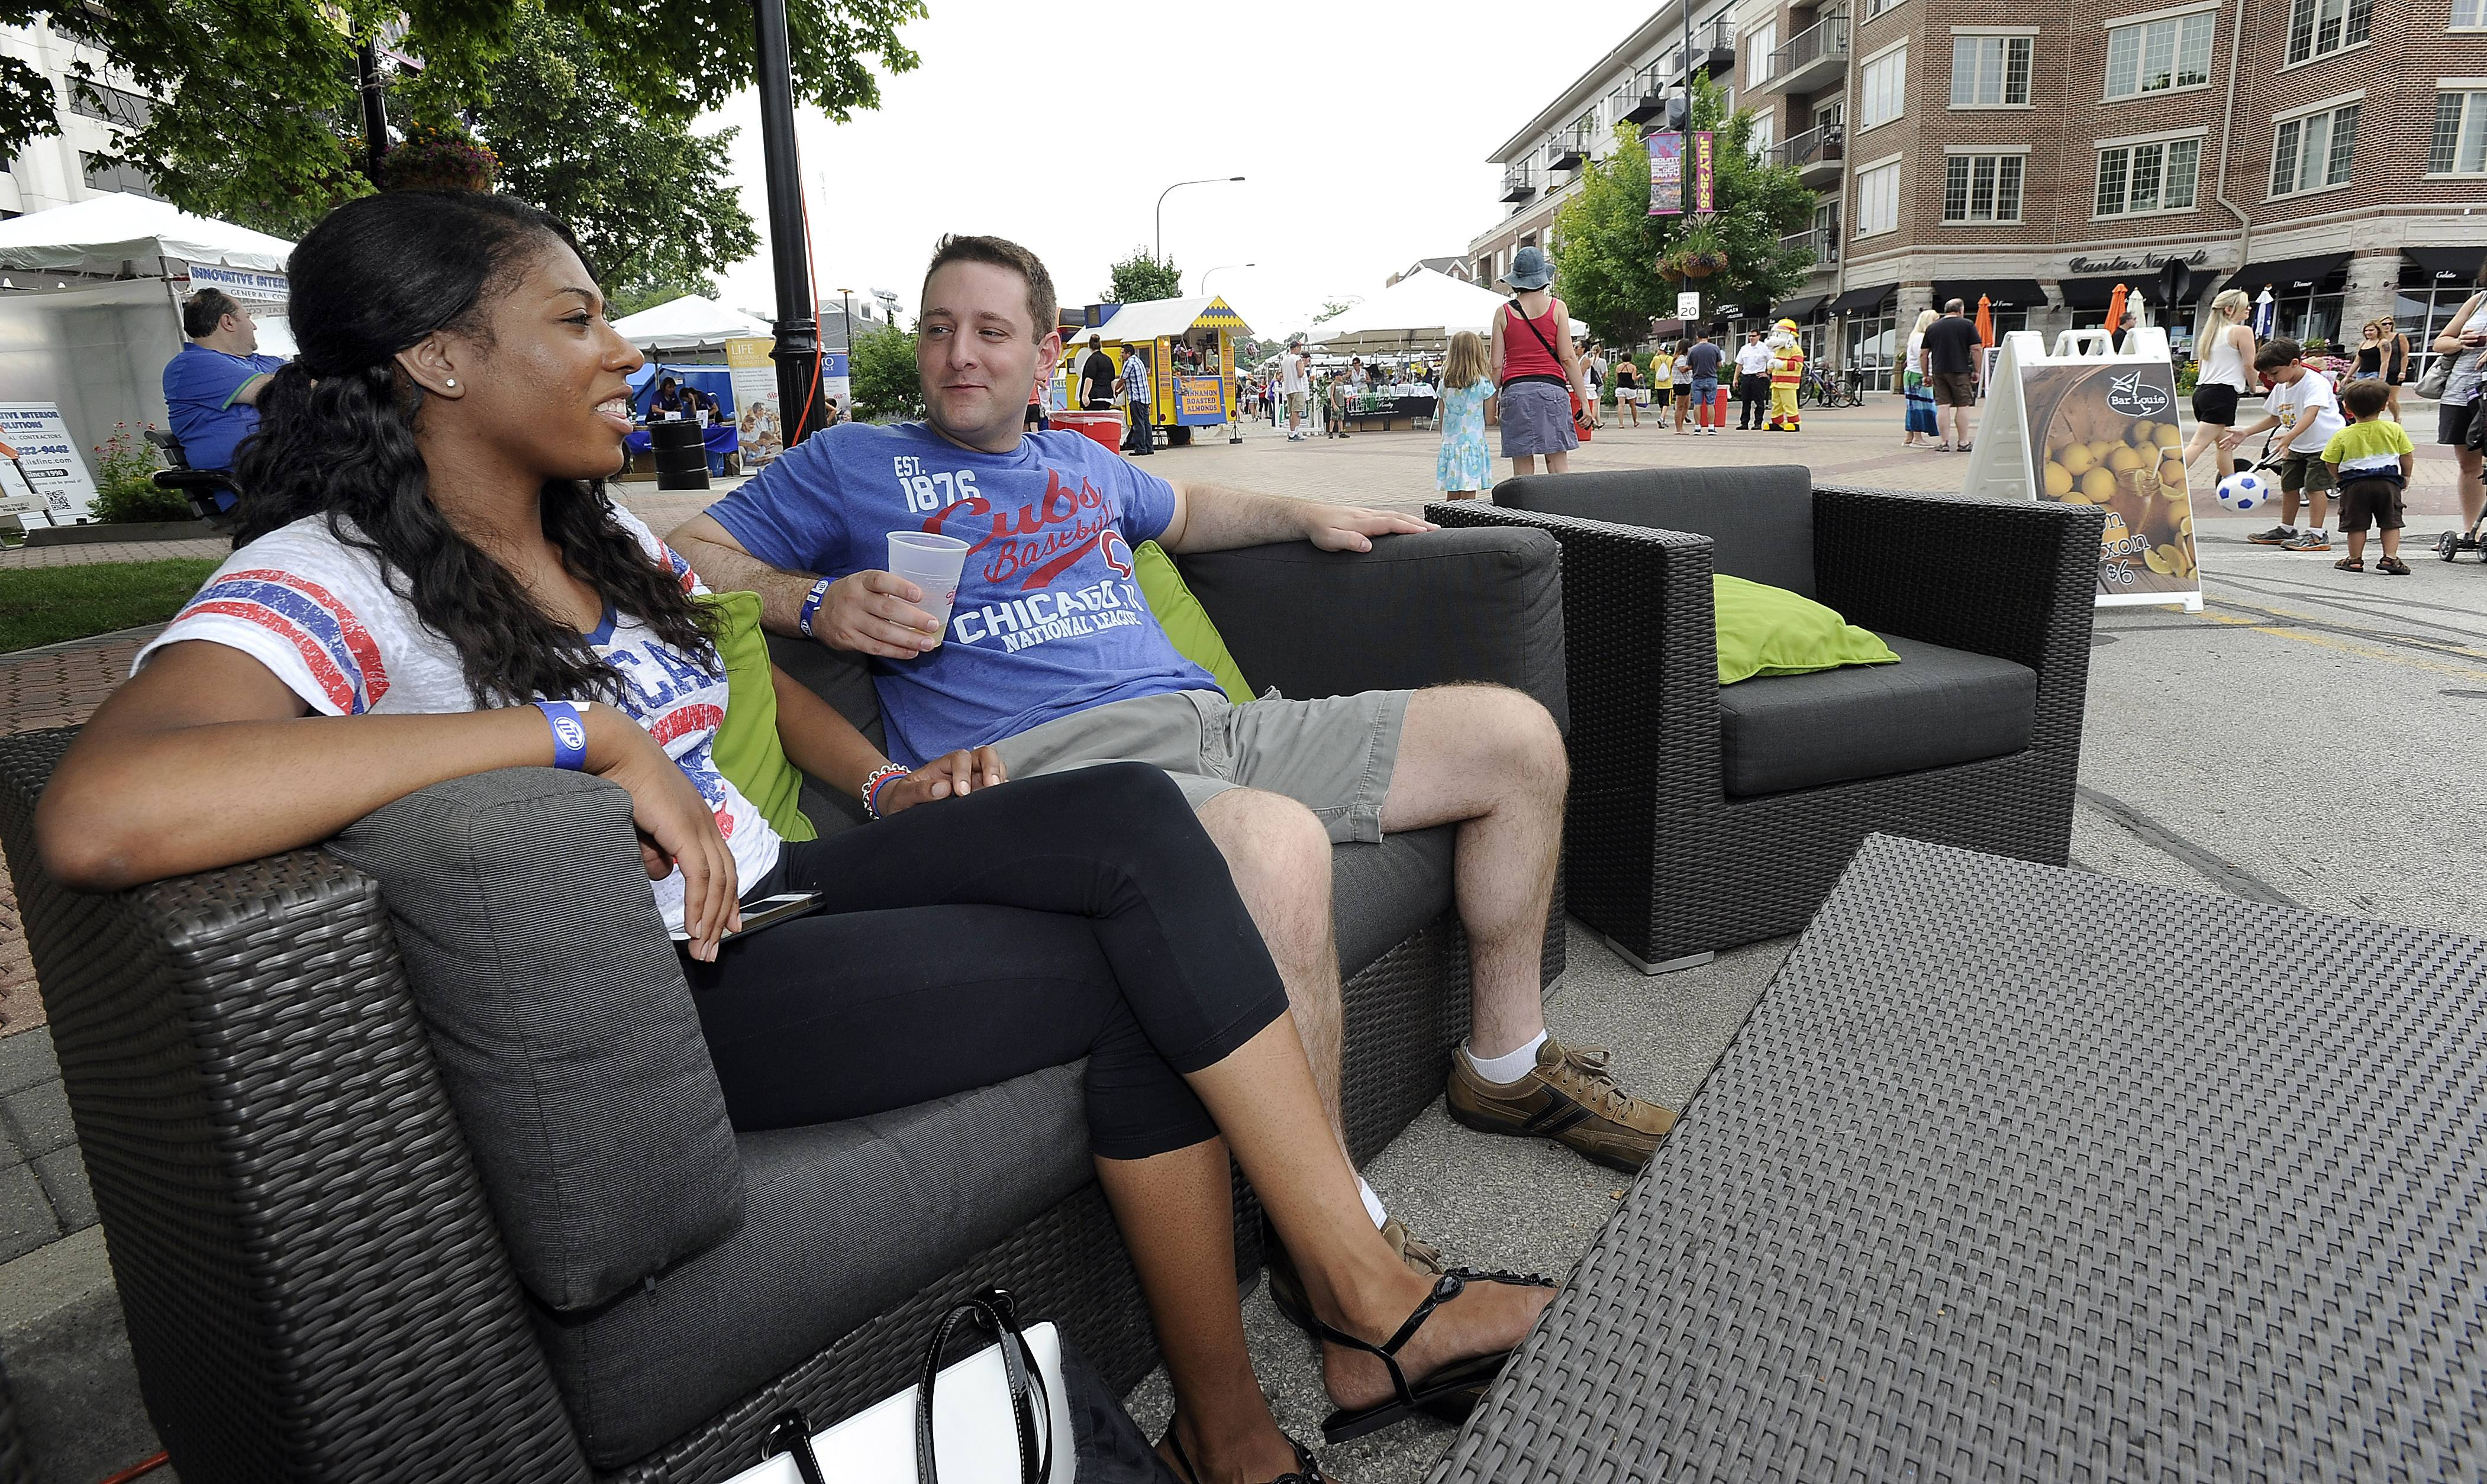 Tiffany Williams of Evanston and Shane O'Donnell of Indiana chill out with cold drinks and a front-row seat for the action Saturday at the 15th annual Mount Prospect Downtown Block Party.